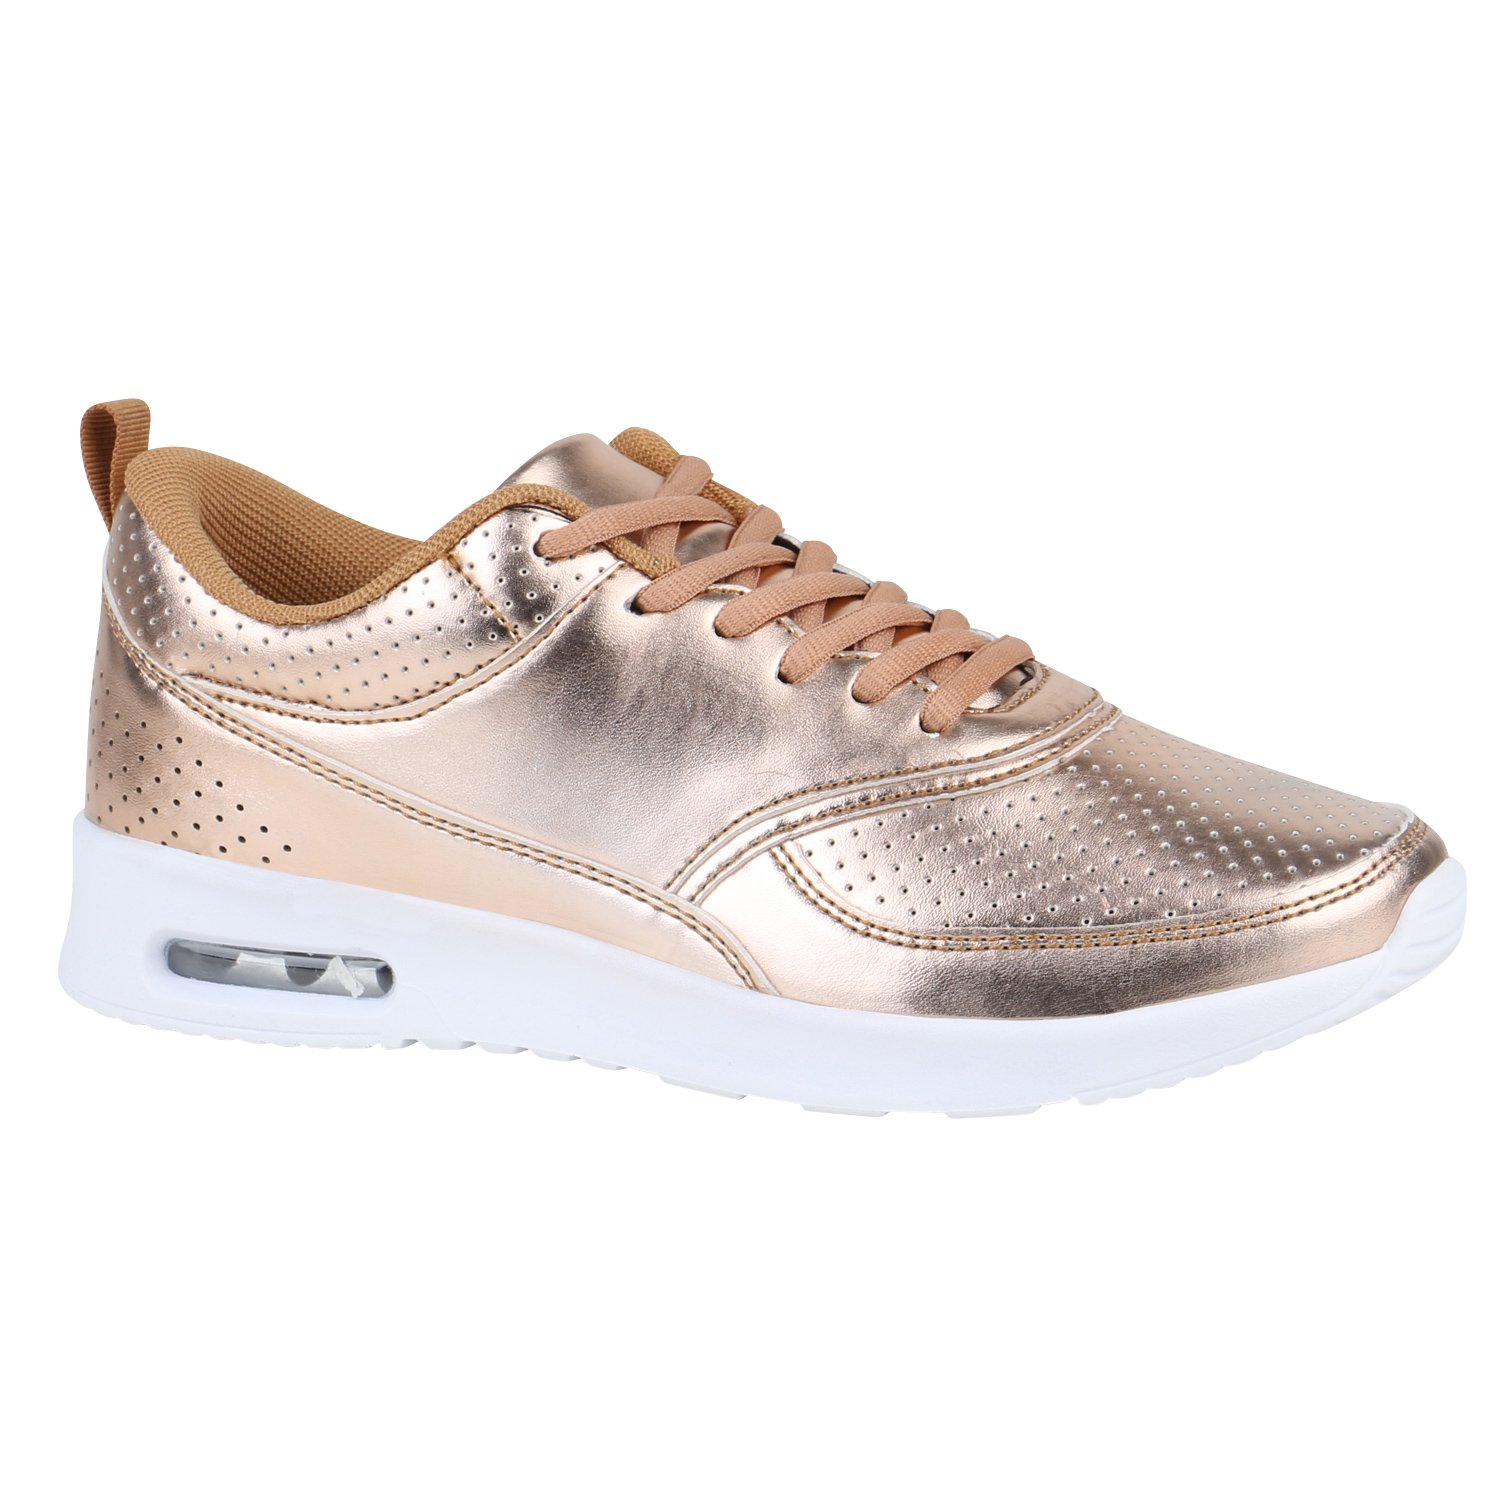 Chaussure De Stiefelparadies Courte Femme, Rose, Taille 37